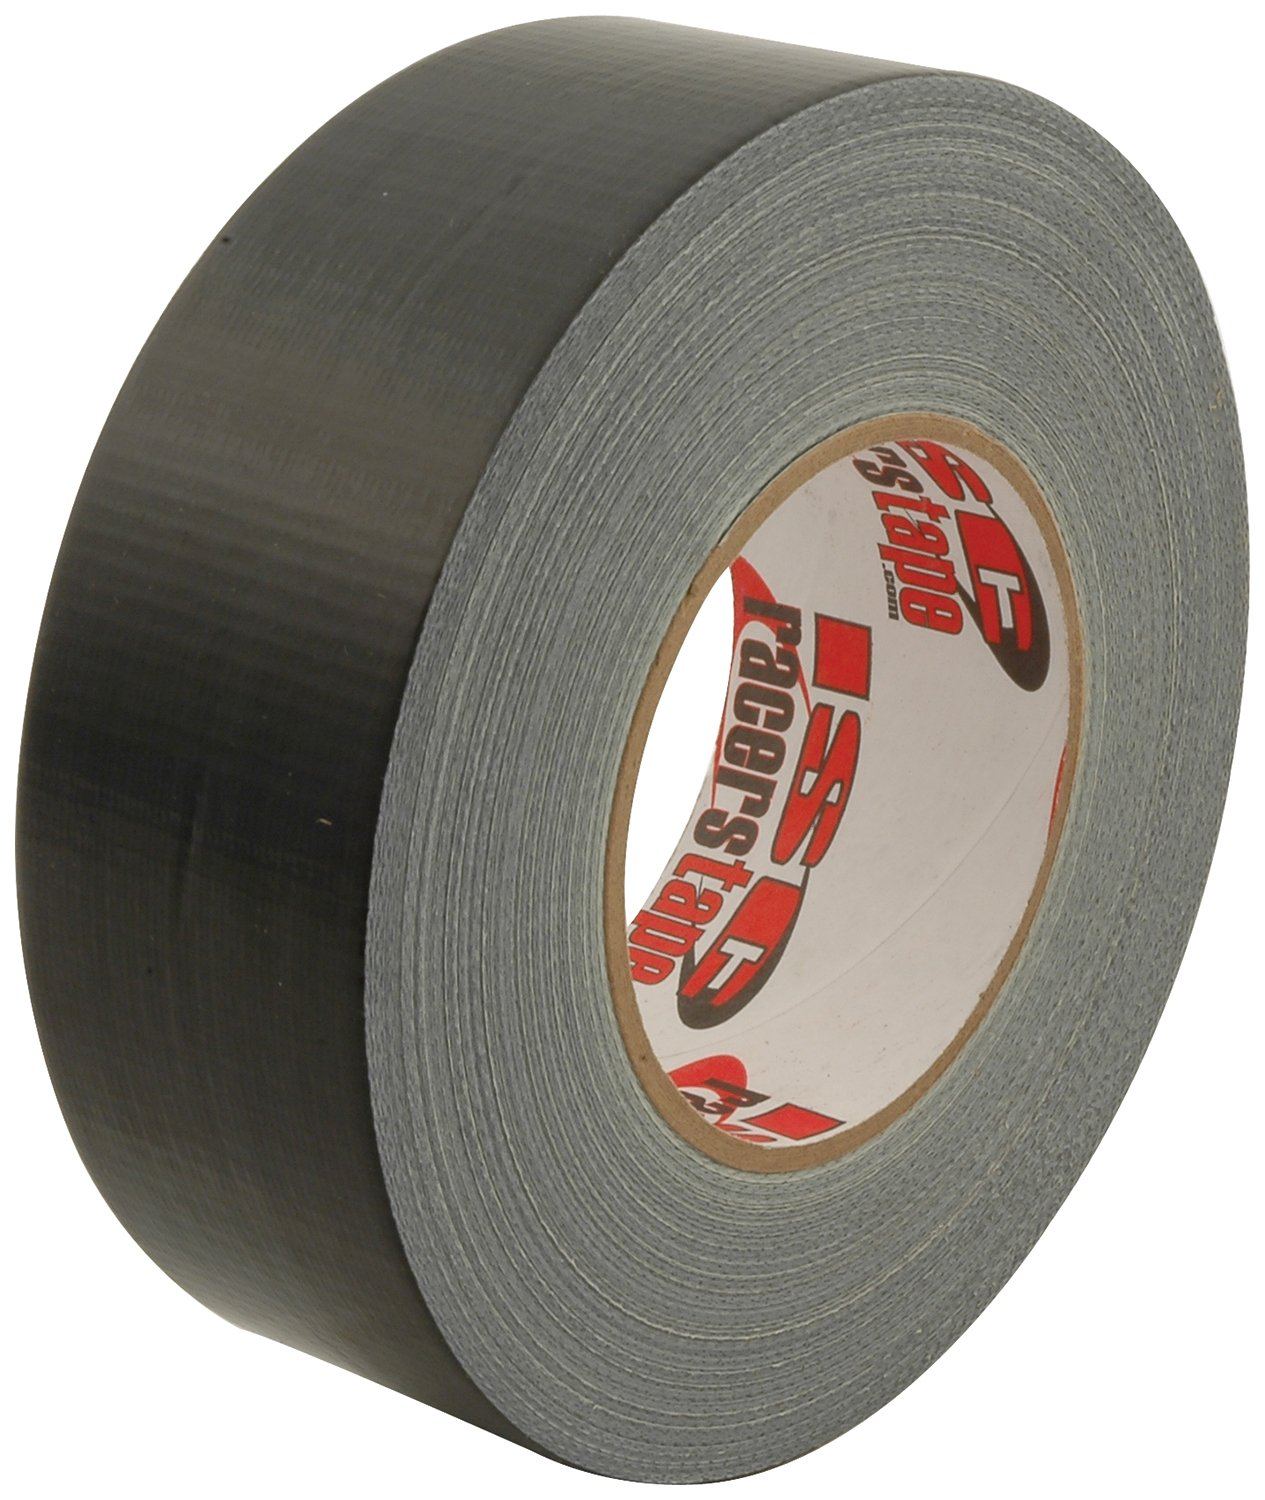 Allstar Performance ALL14155 Blue 2 x 180 Racers Tape